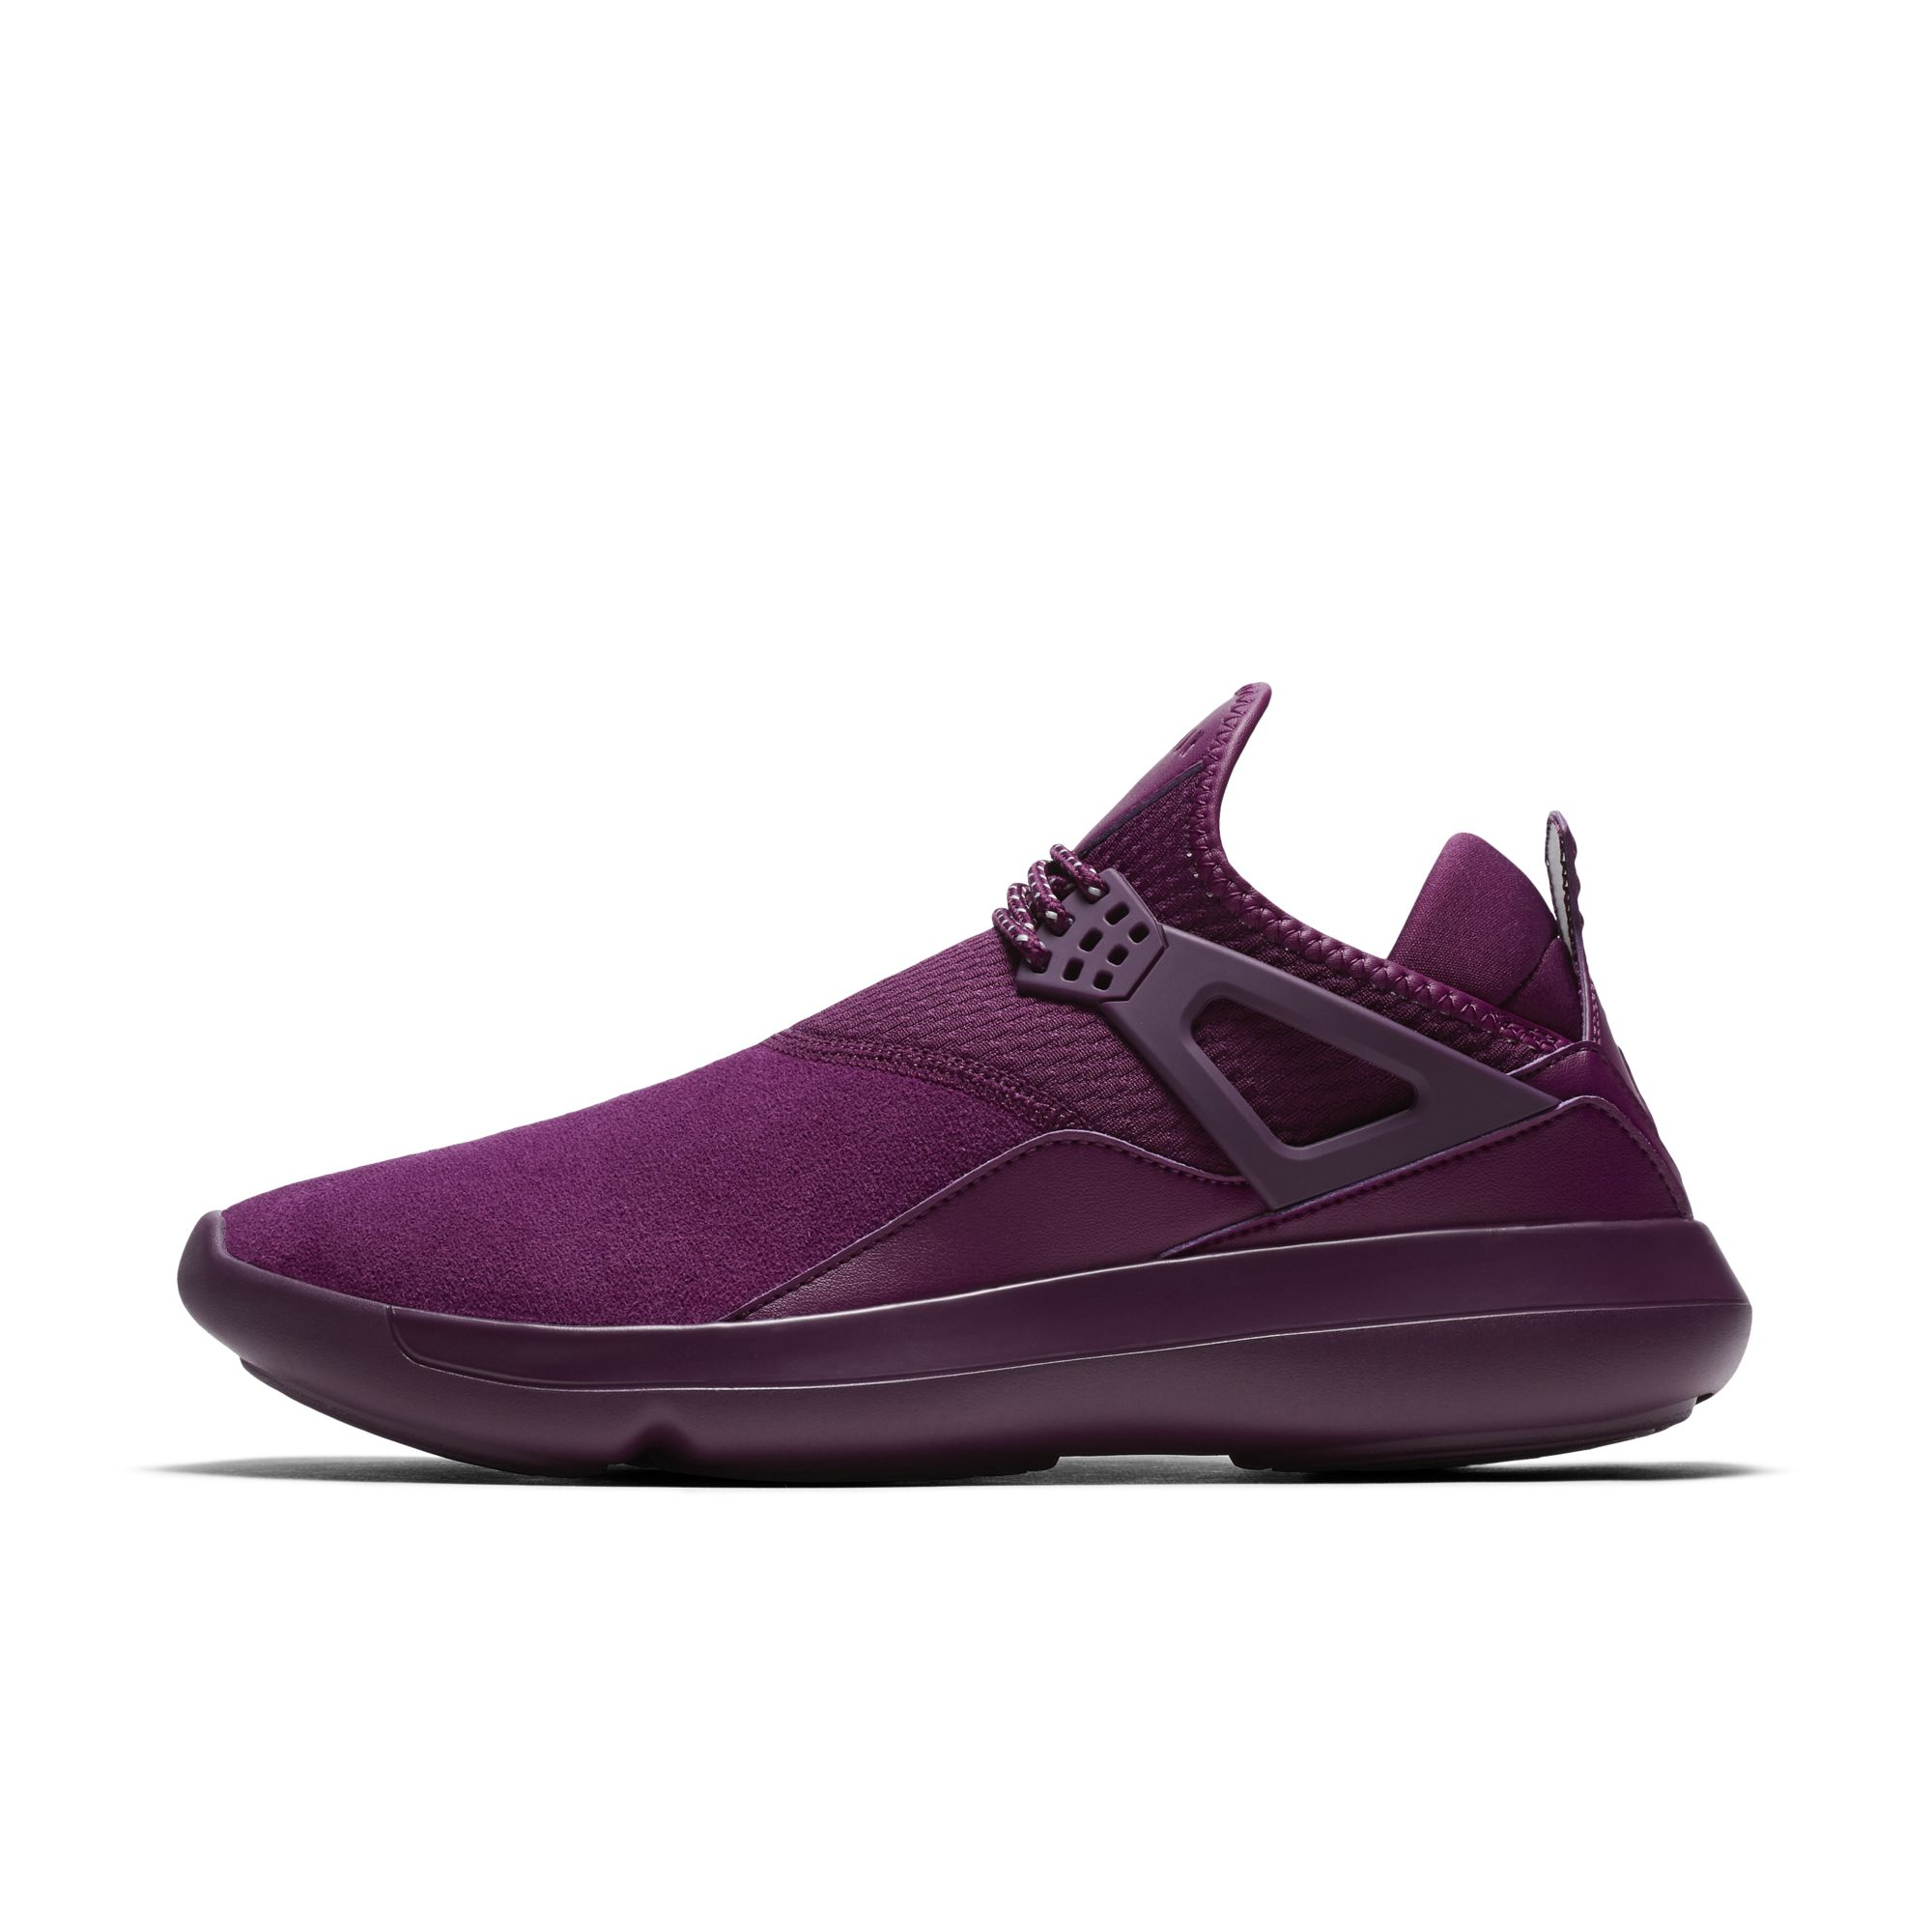 jordan fly 89 purple 2